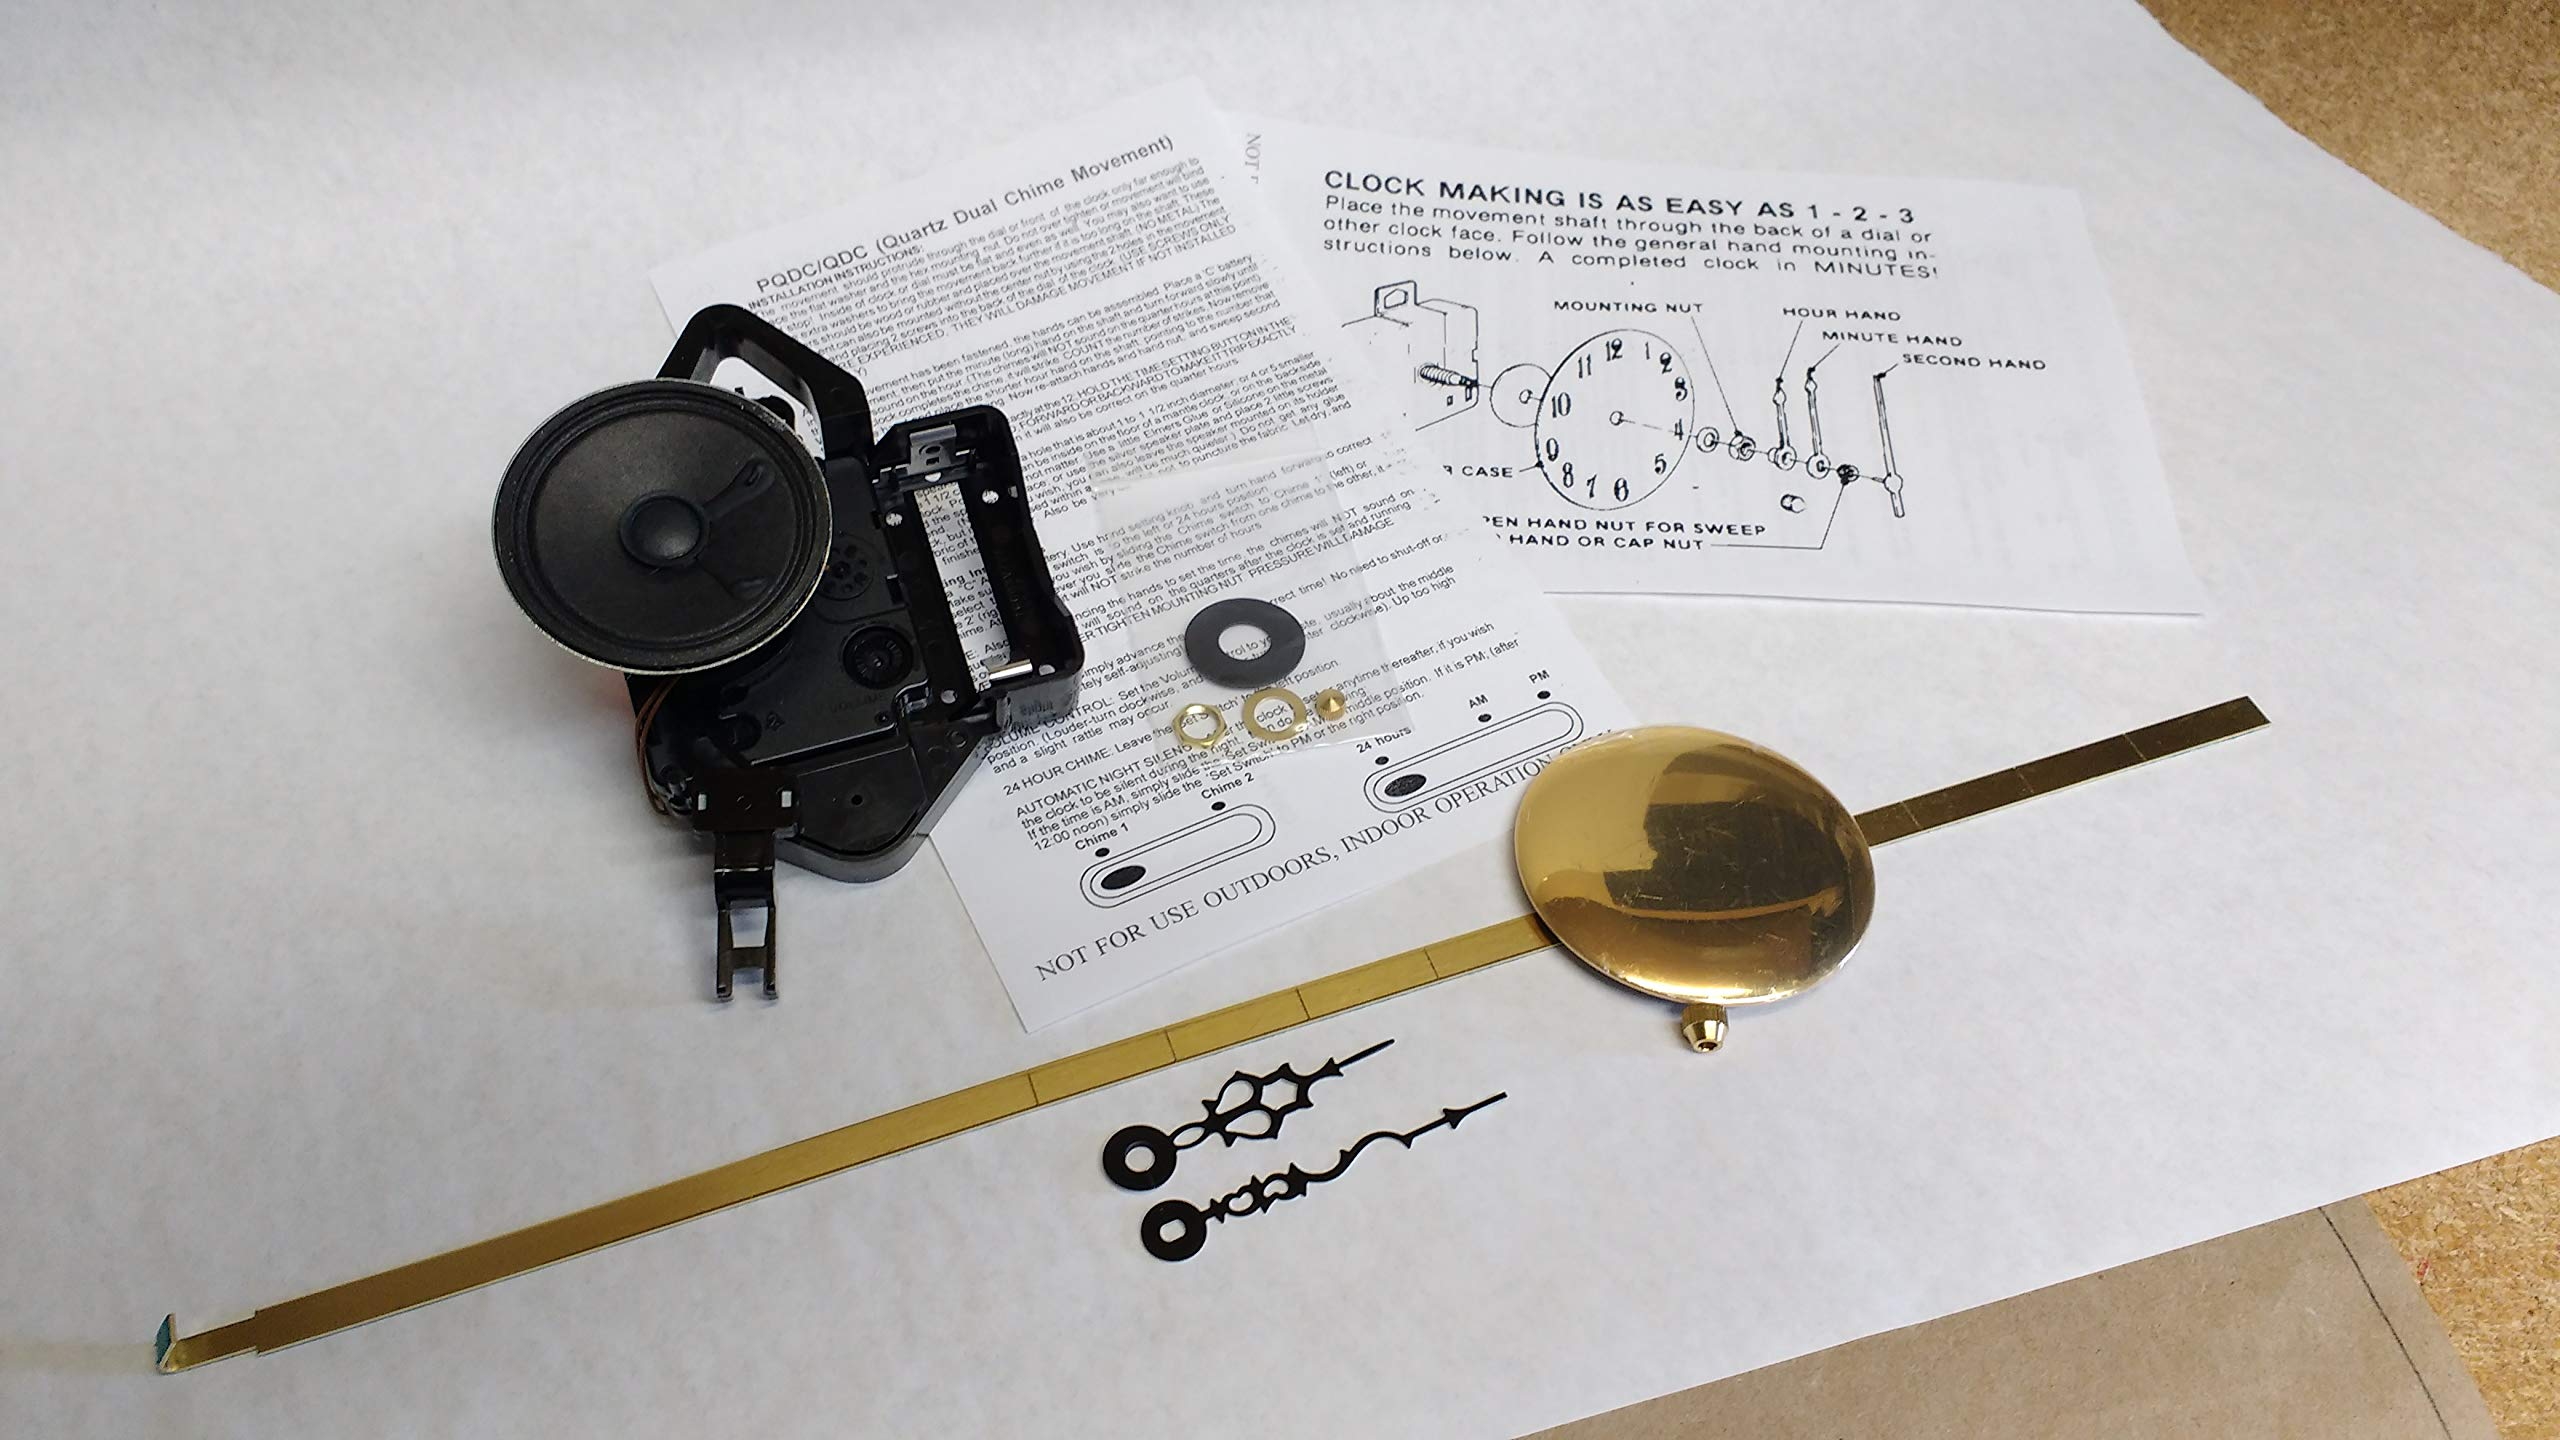 Seiko 4/4 Westminster & Whittington Chime Movement - Pendulum Movement - Clock Repair Parts Kit (Short Shaft)